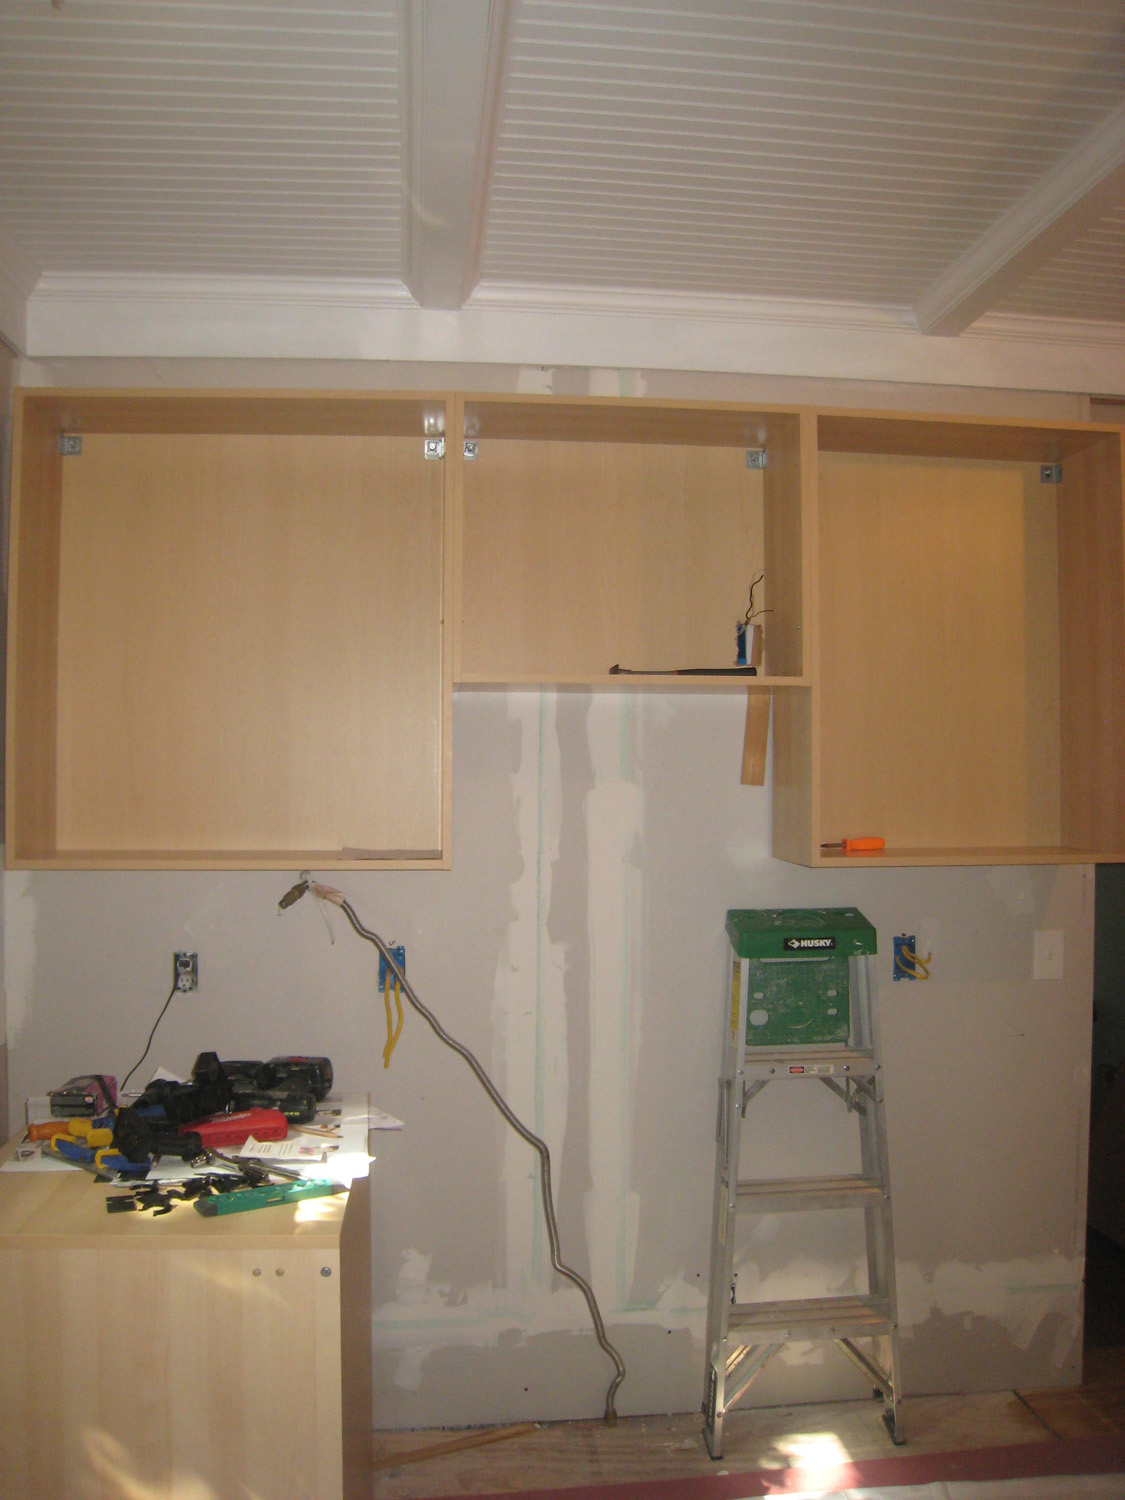 North Wall W/ Upper Cabinets Installed (microwave To Be Installed Below  Middle Cabinet)